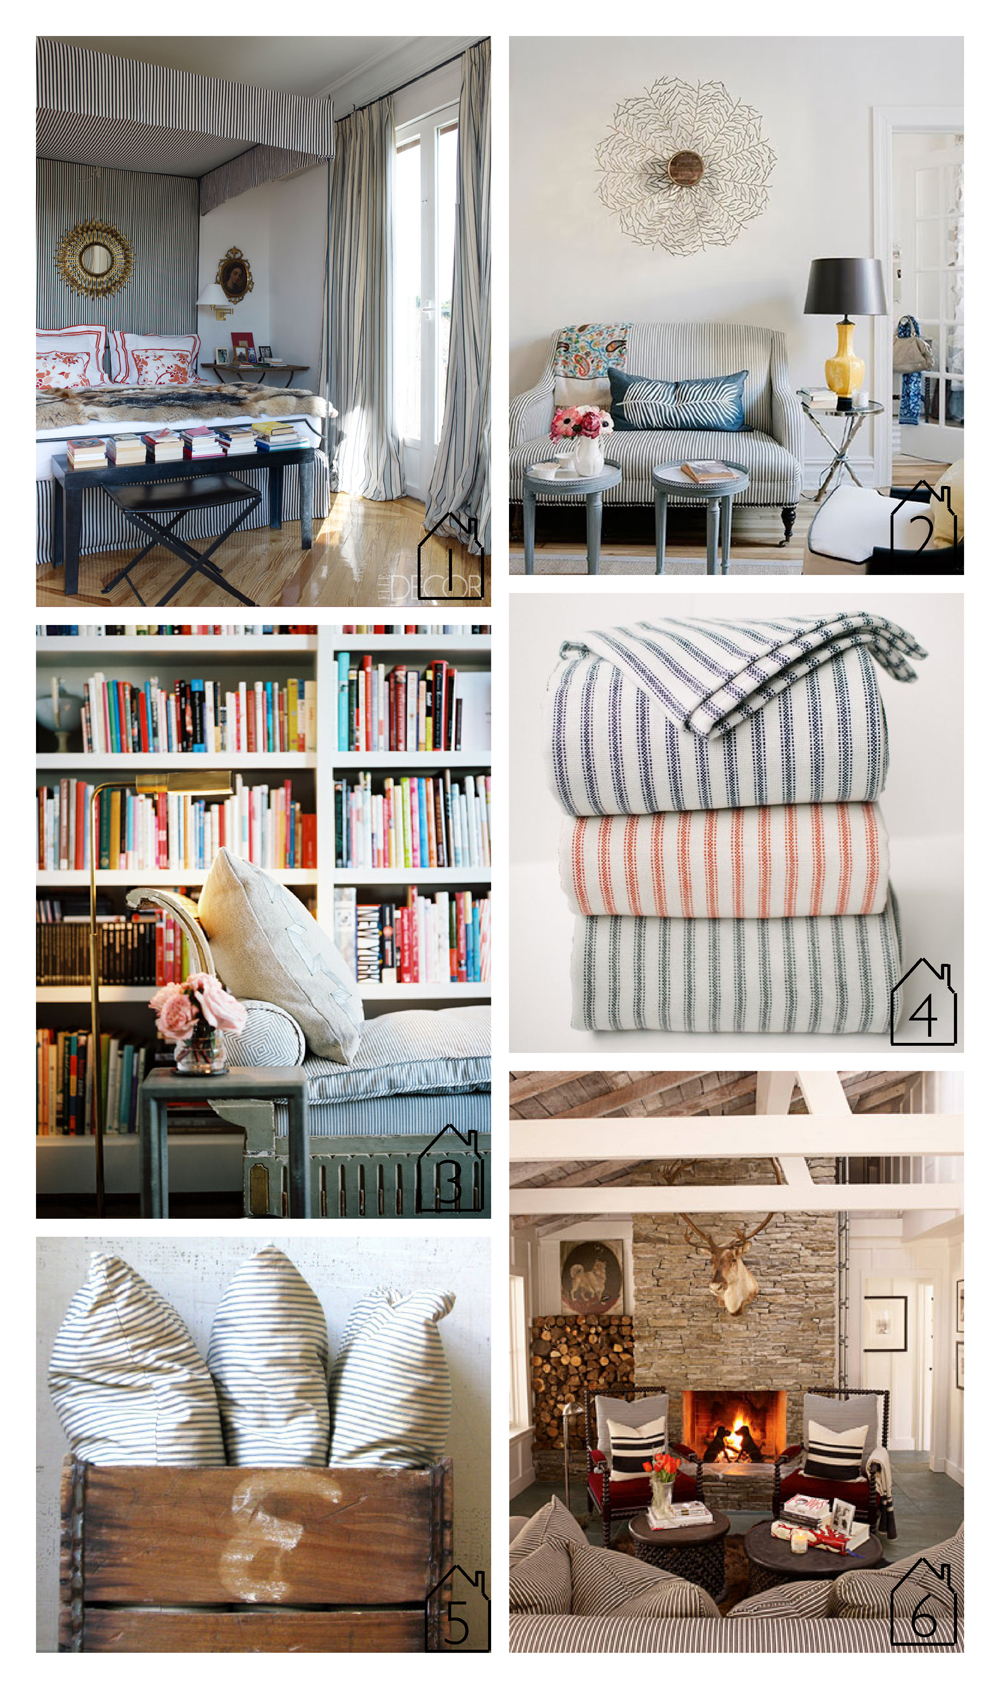 1. bedroom of Carolina Herrera via  Elle Decor   2. via  The Little House in the City blog   3. daybed via  Lonny   4. ticking stripe wool blankets from  Faribault Woolen Mill Co.    5. ticking stripe pillows via  Etsy   6. classic cottage designed by  Ken Fulk  via  House Beautiful